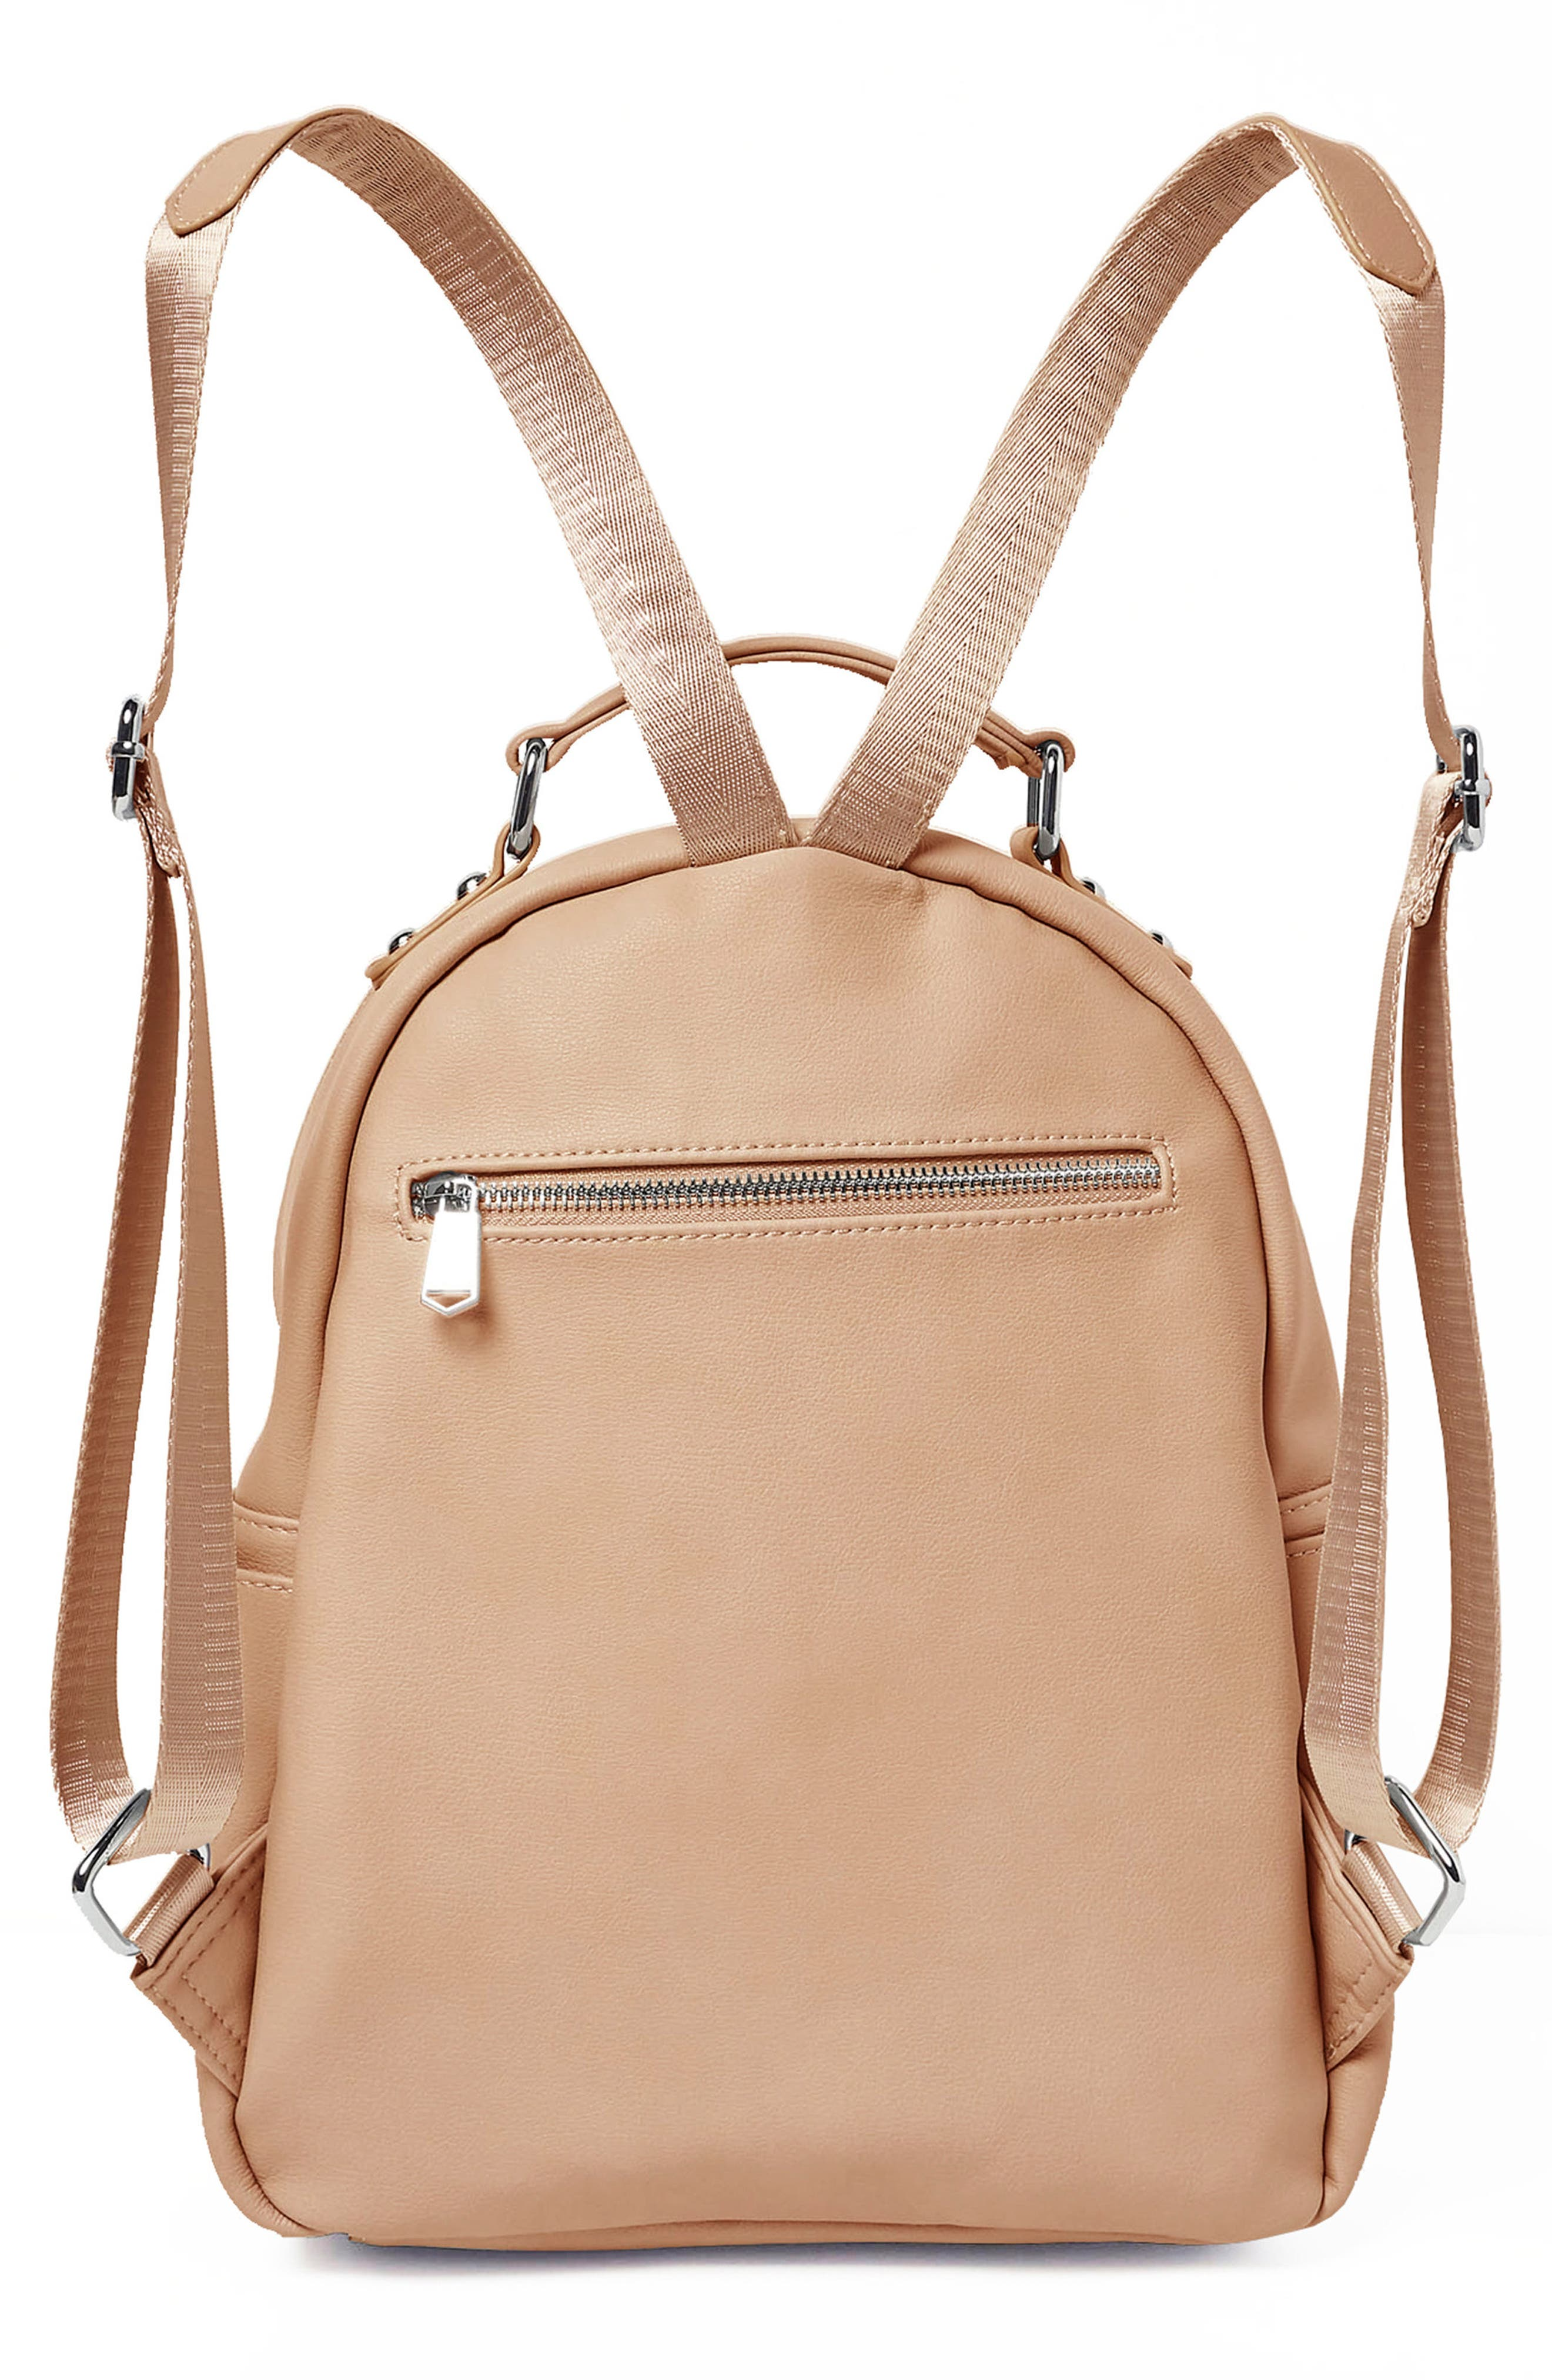 On My Own Vegan Leather Backpack,                             Alternate thumbnail 2, color,                             NUDE